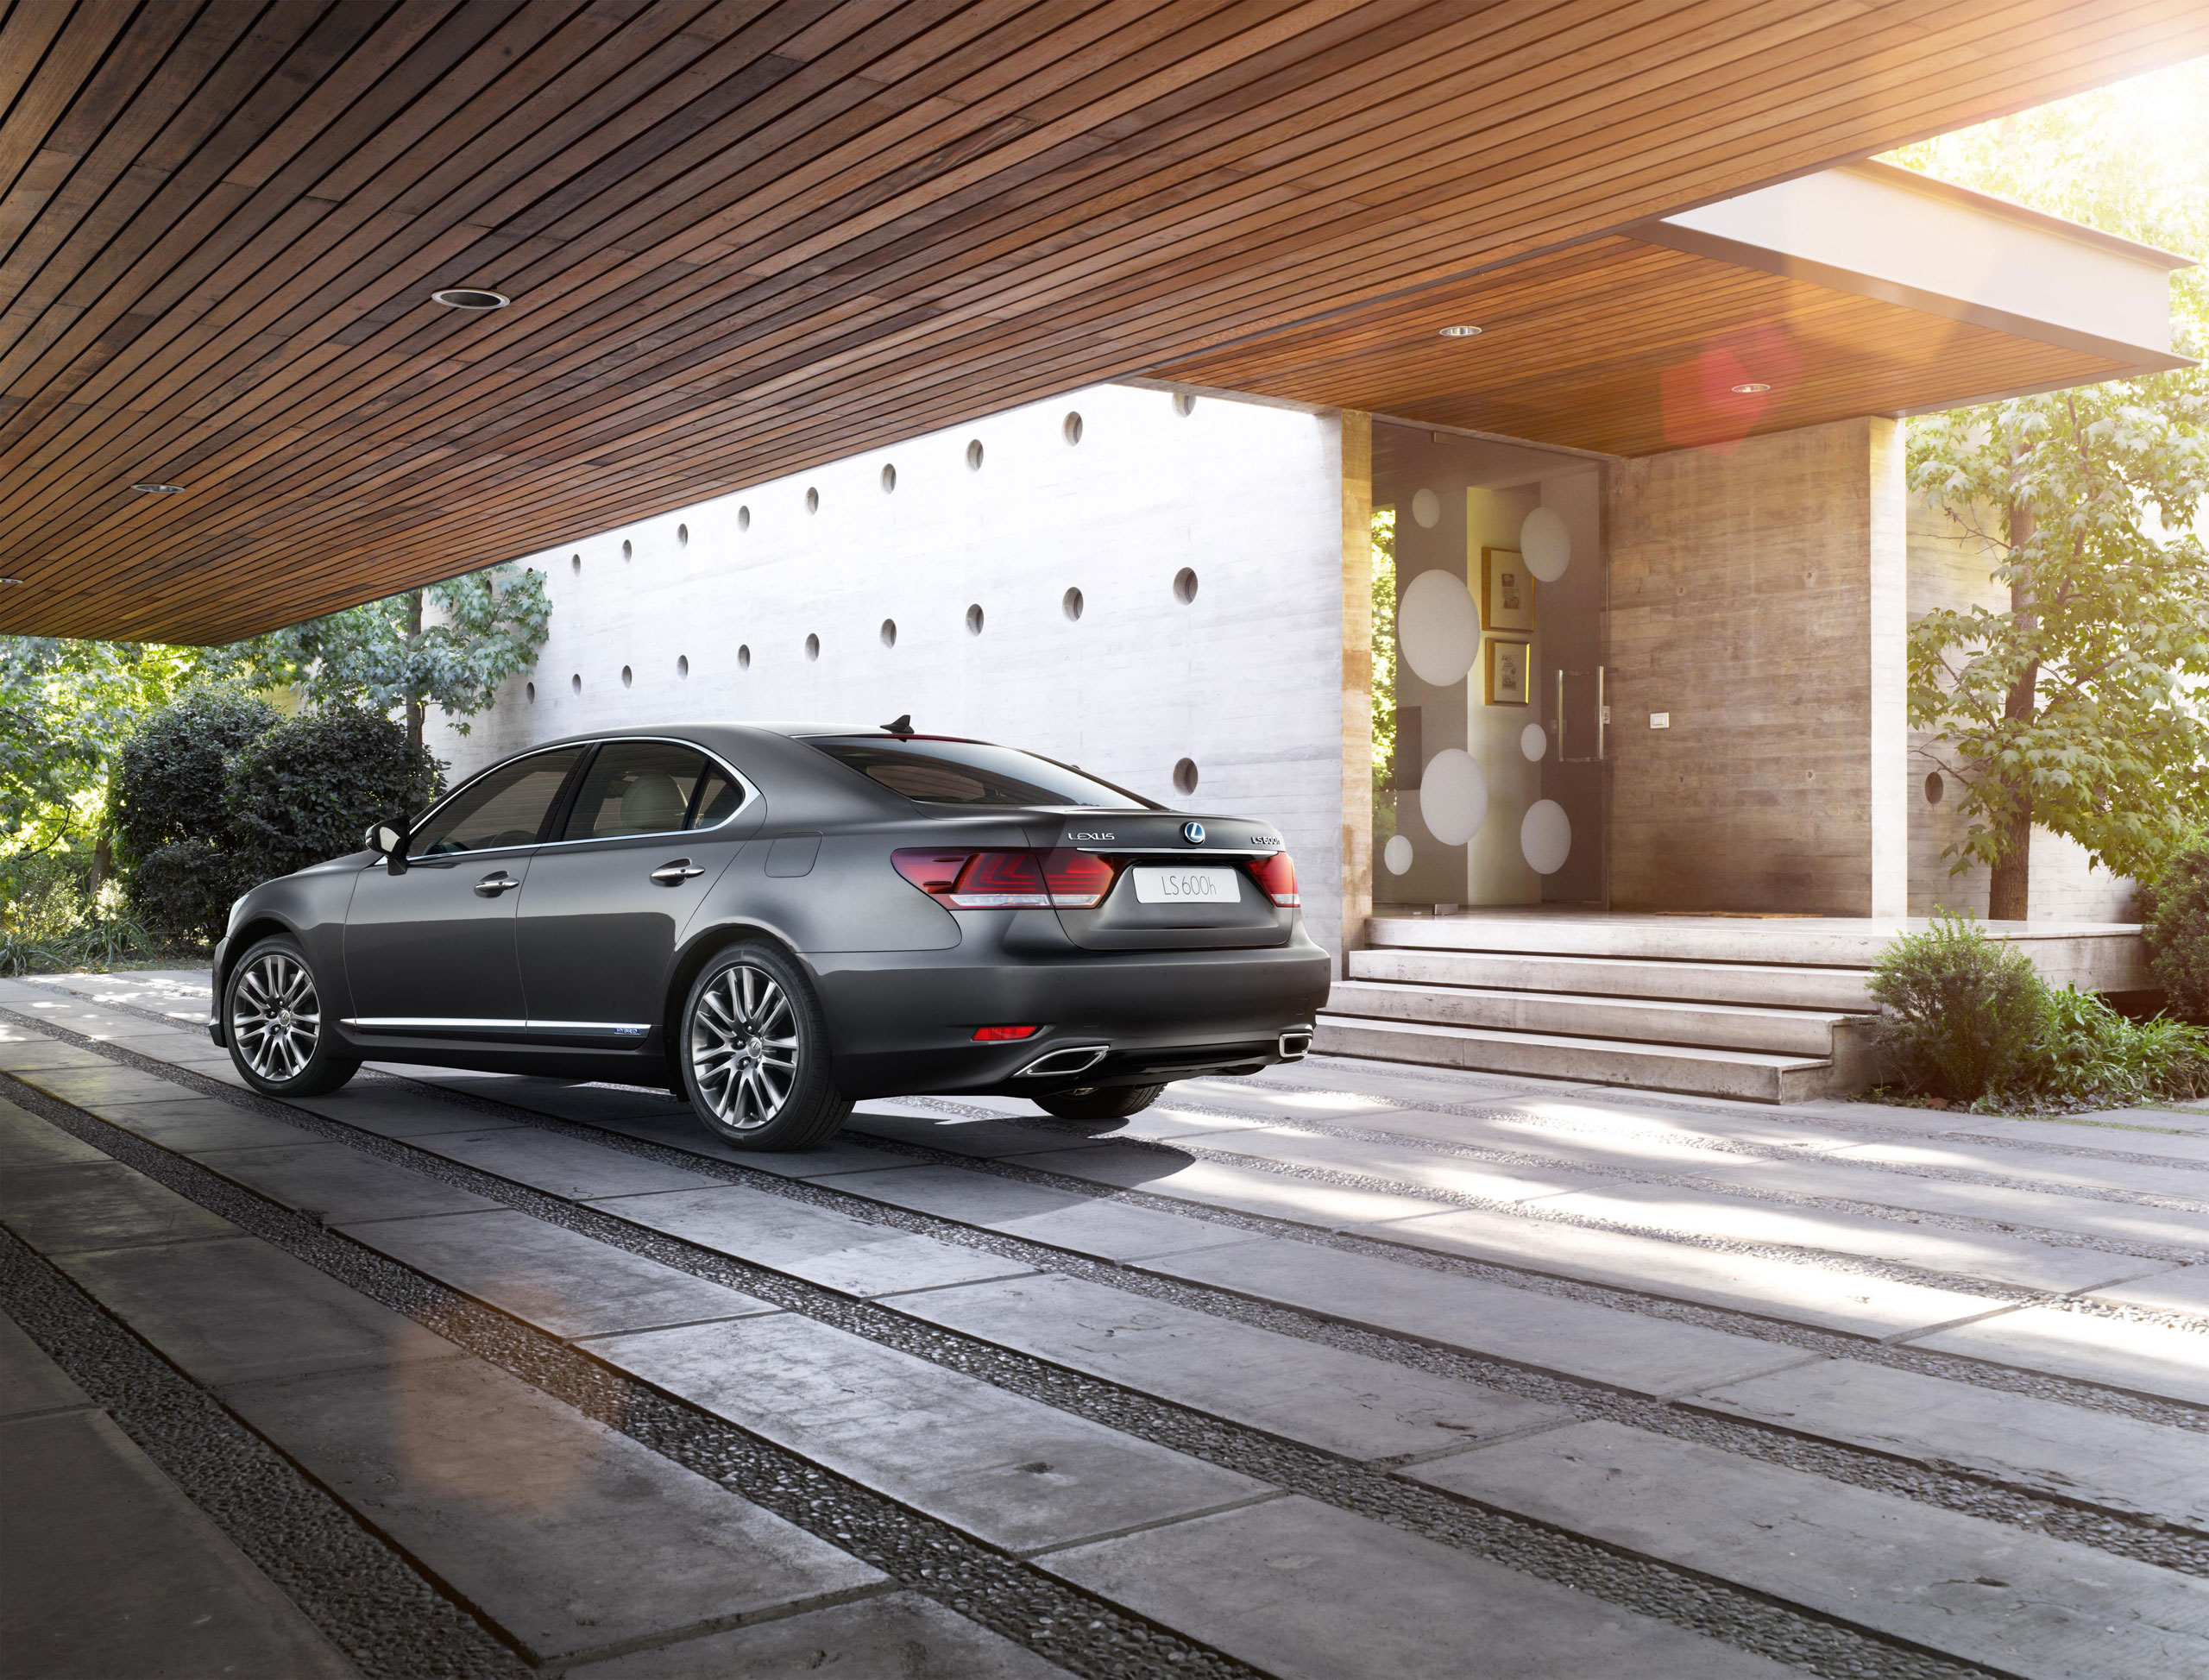 Stunning 2013 Lexus LS Photo Gallery | Lexus Enthusiastls gallery